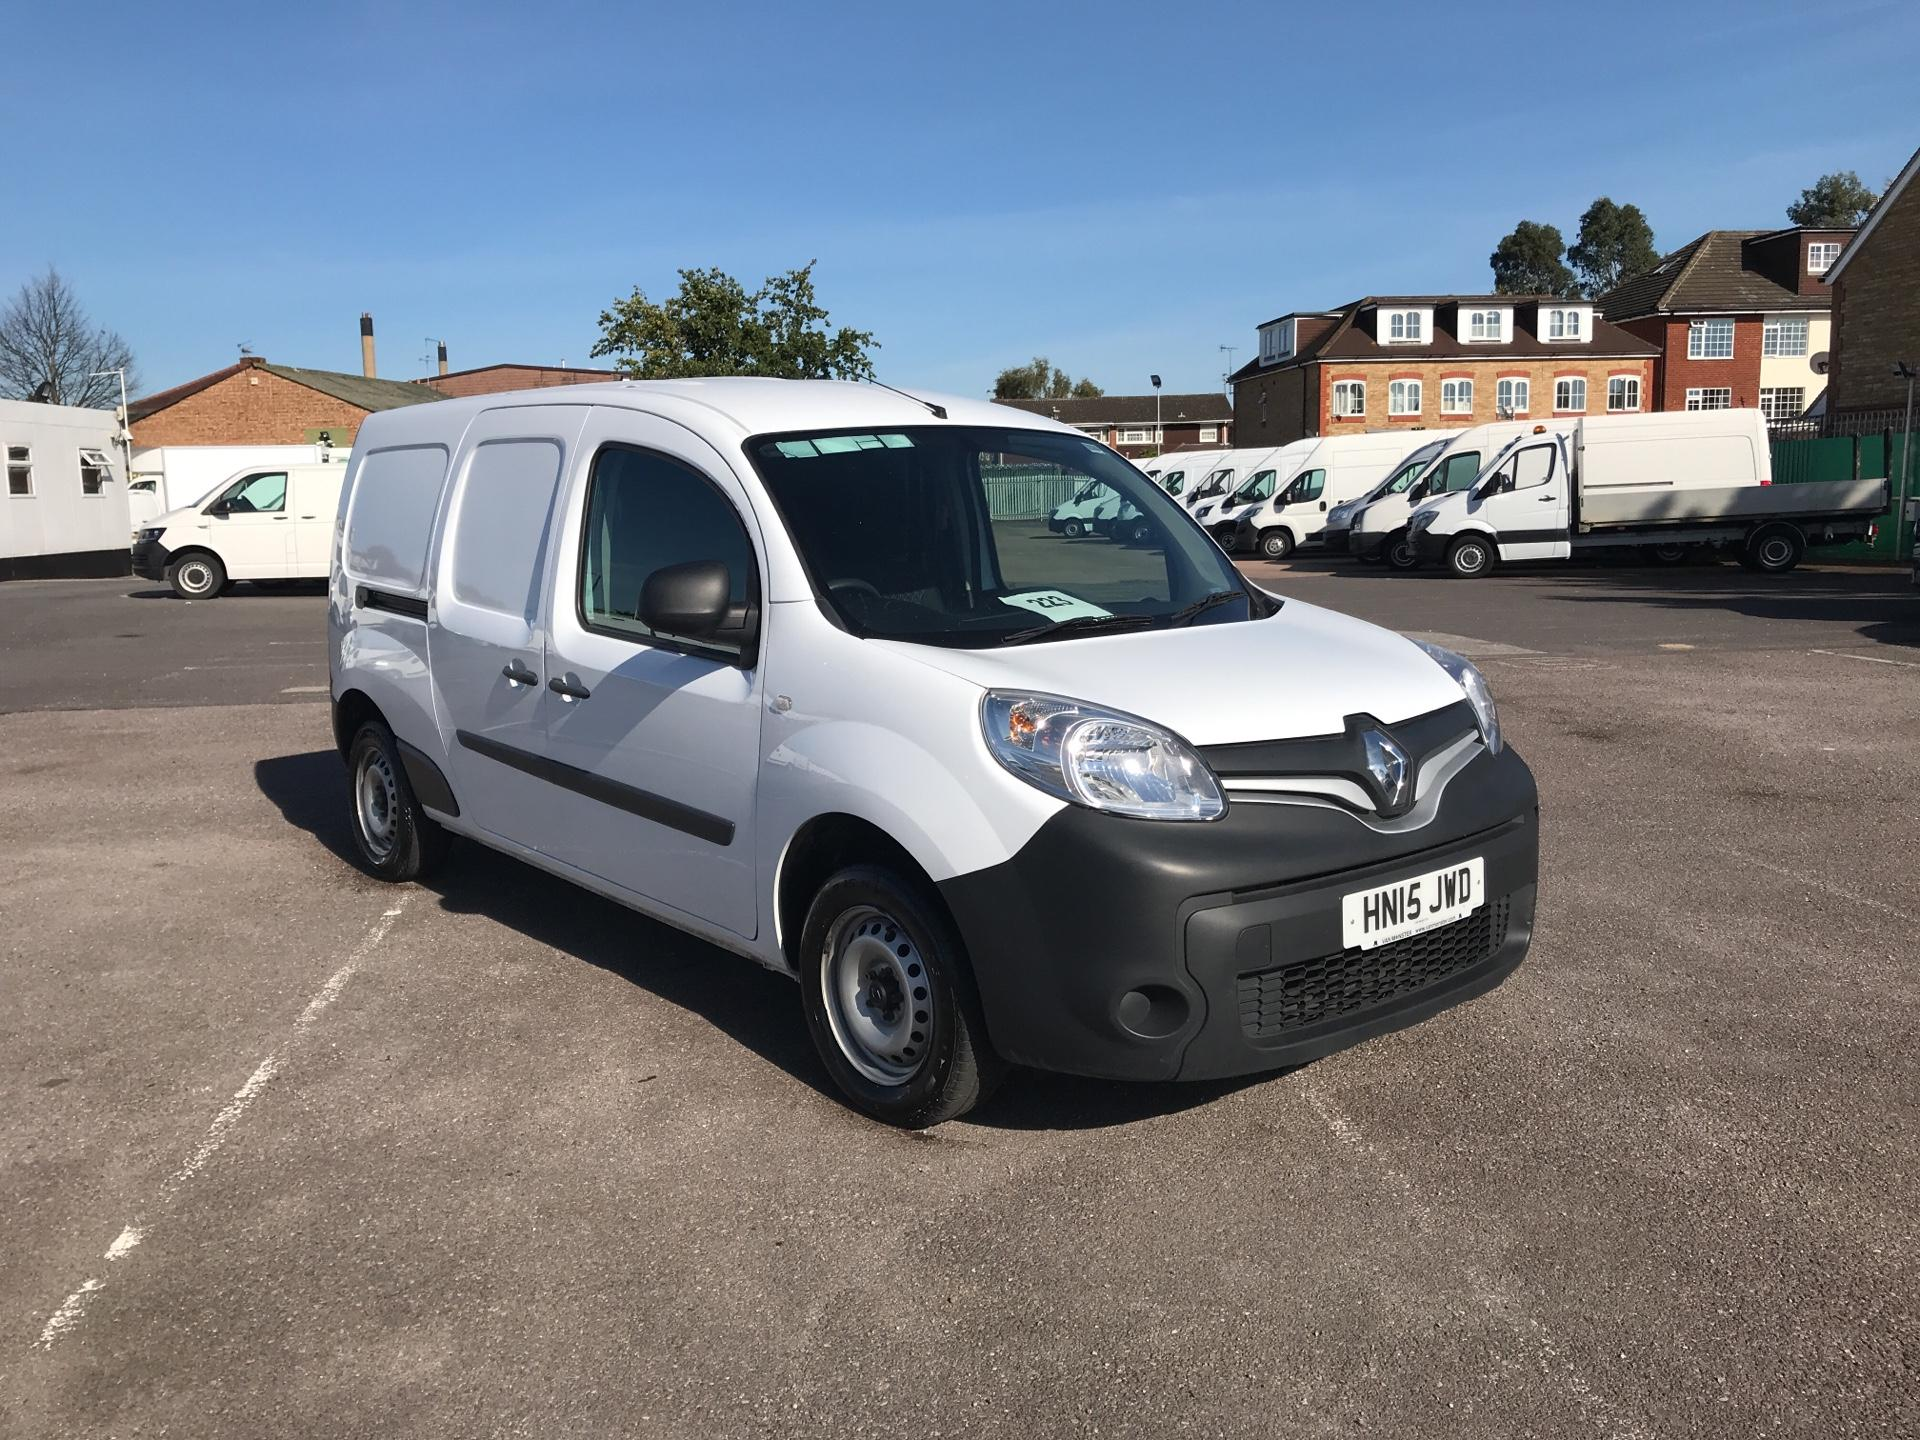 2015 Renault Kangoo Maxi LL21 Energy DCI  90 ECO 2*VALUE RANGE VEHICLE CONDITION REFLECTED IN PRICE* (HN15JWD)